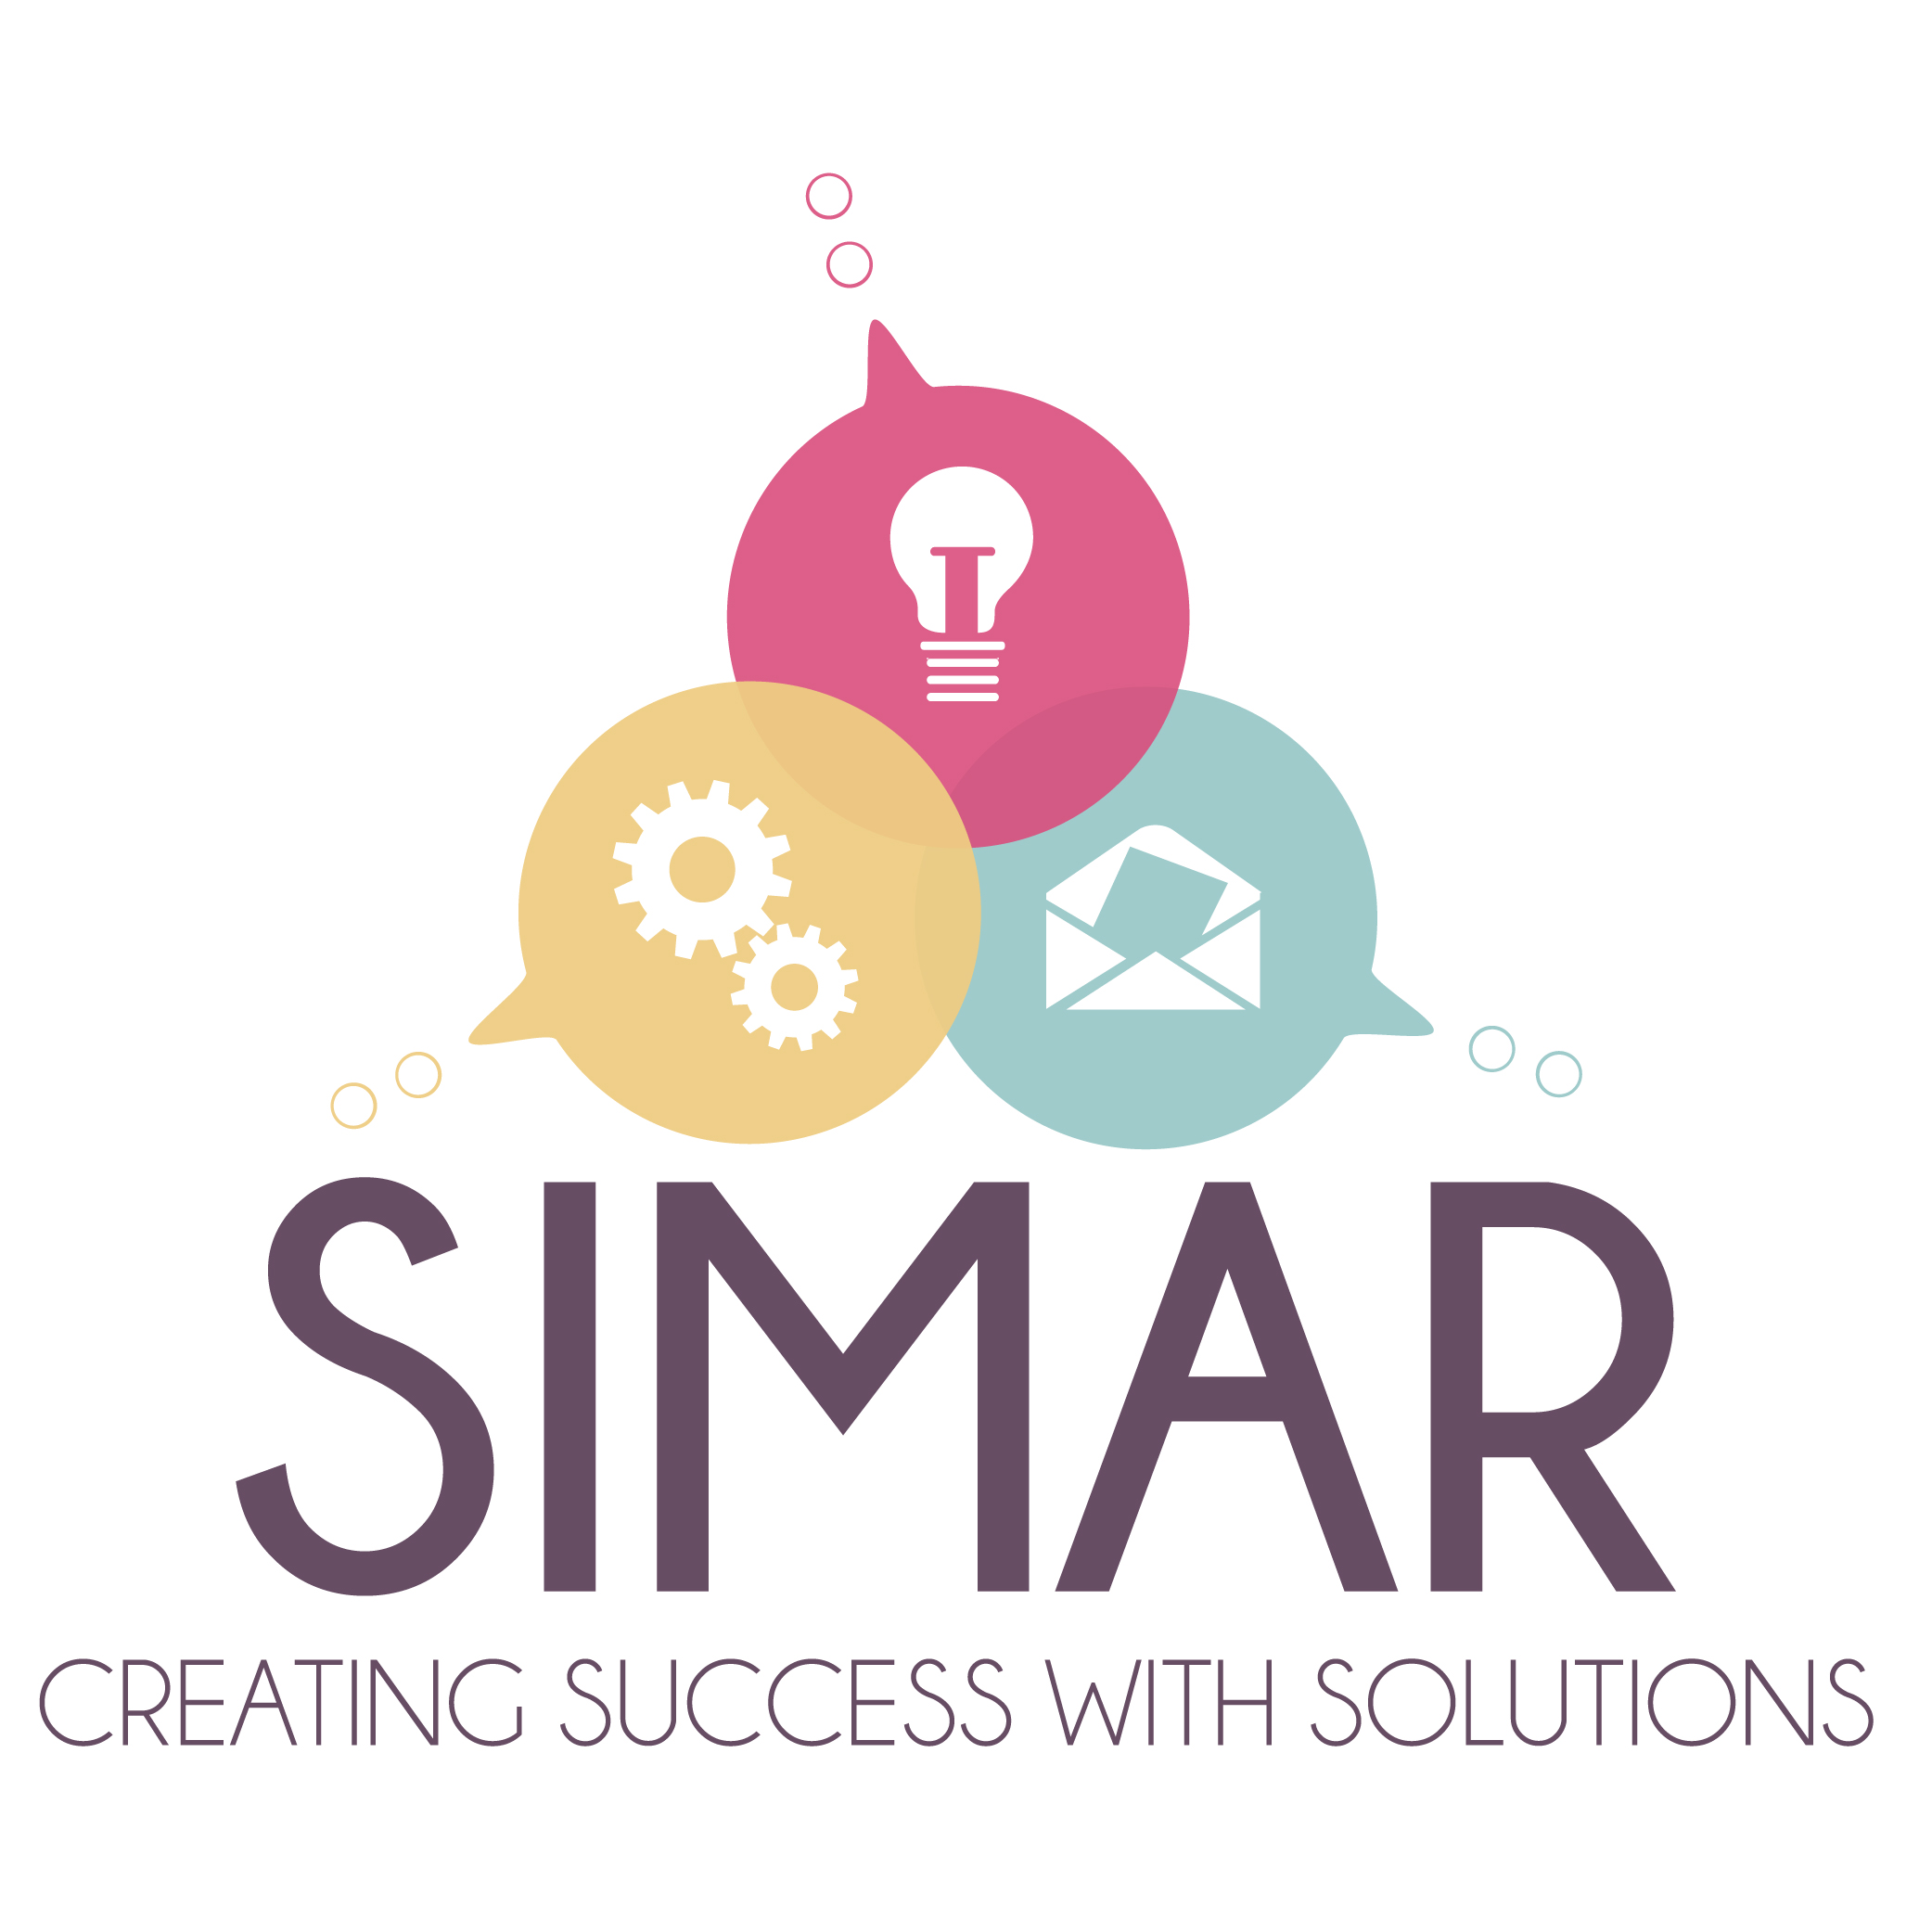 Kick-off 2018 with SiMar's Personal Development Plan!